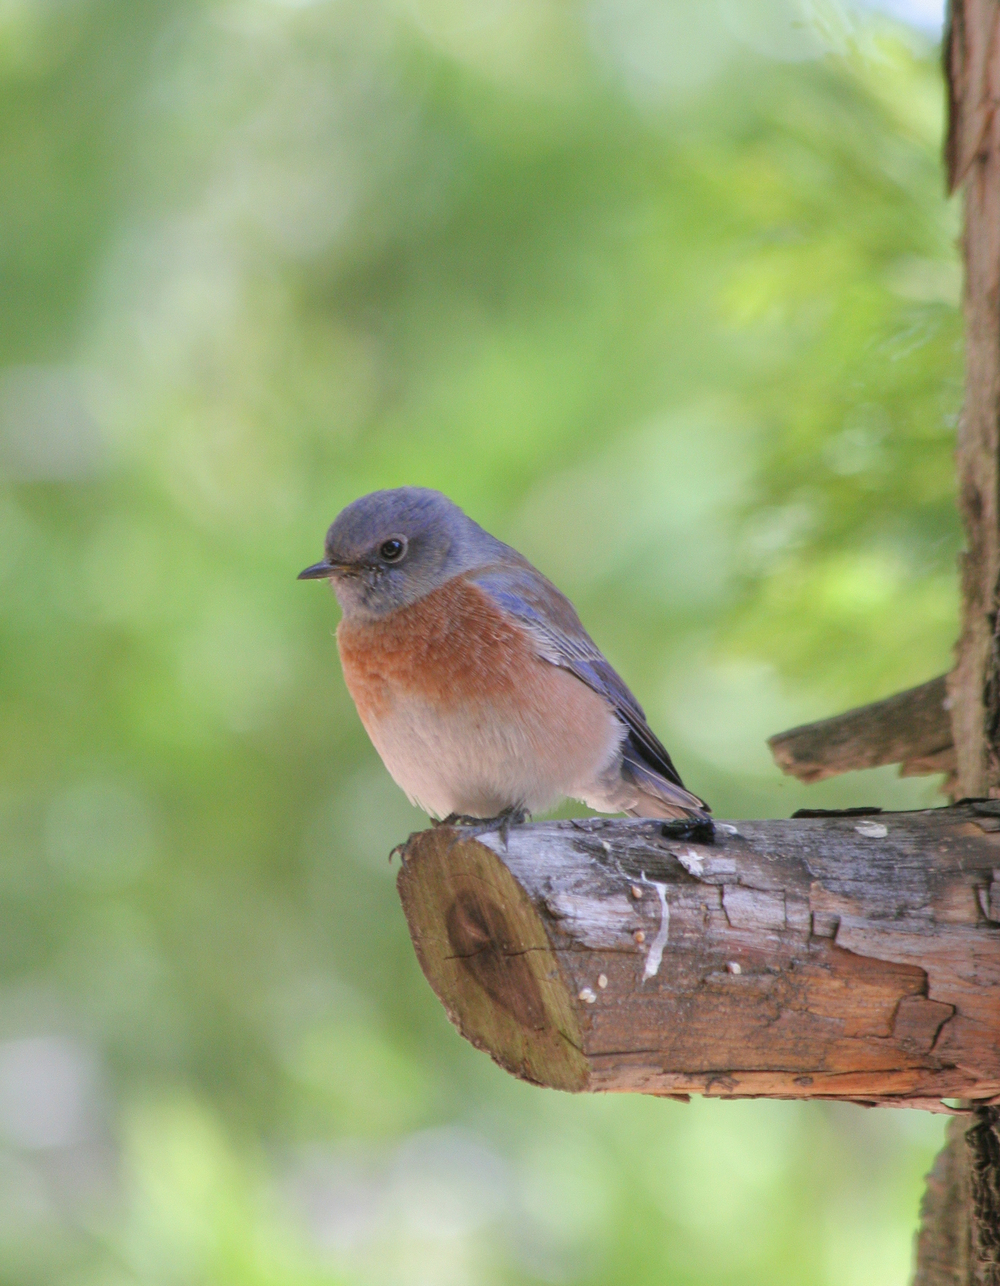 Western bluebird in California